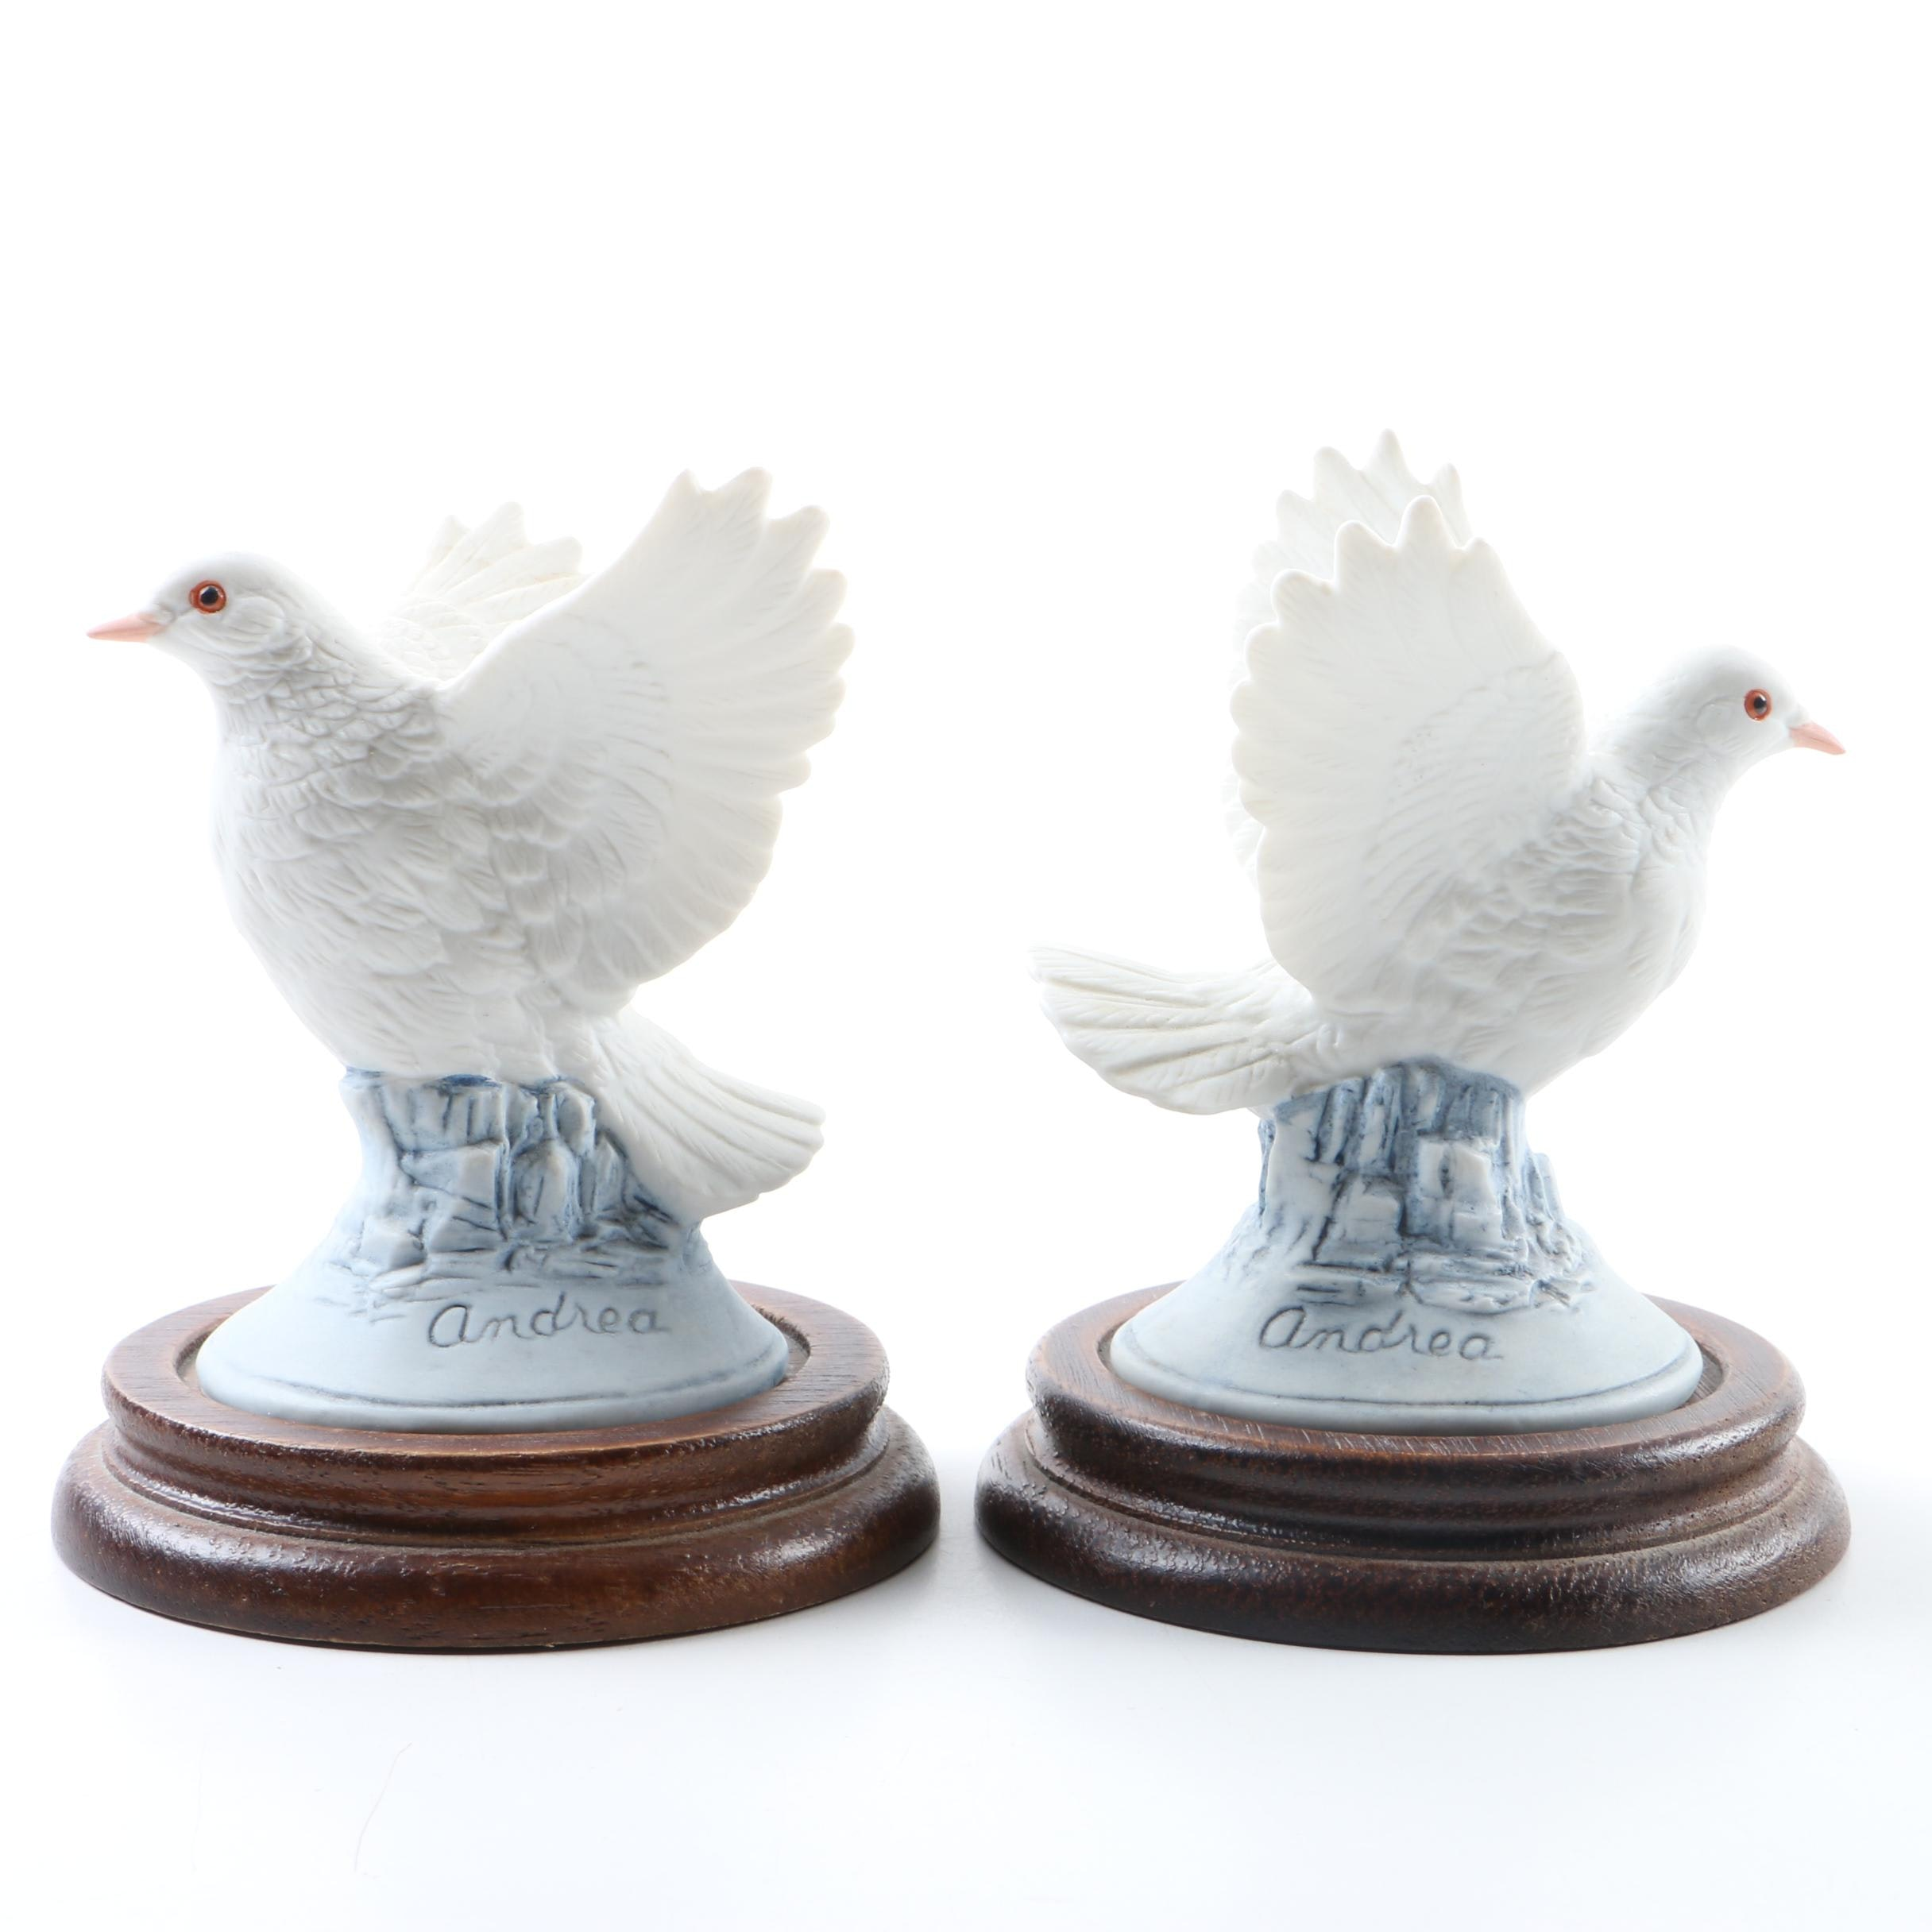 """""""White Dove"""" Porcelain Figurines on Wood Stands by Andrea by Sadek"""